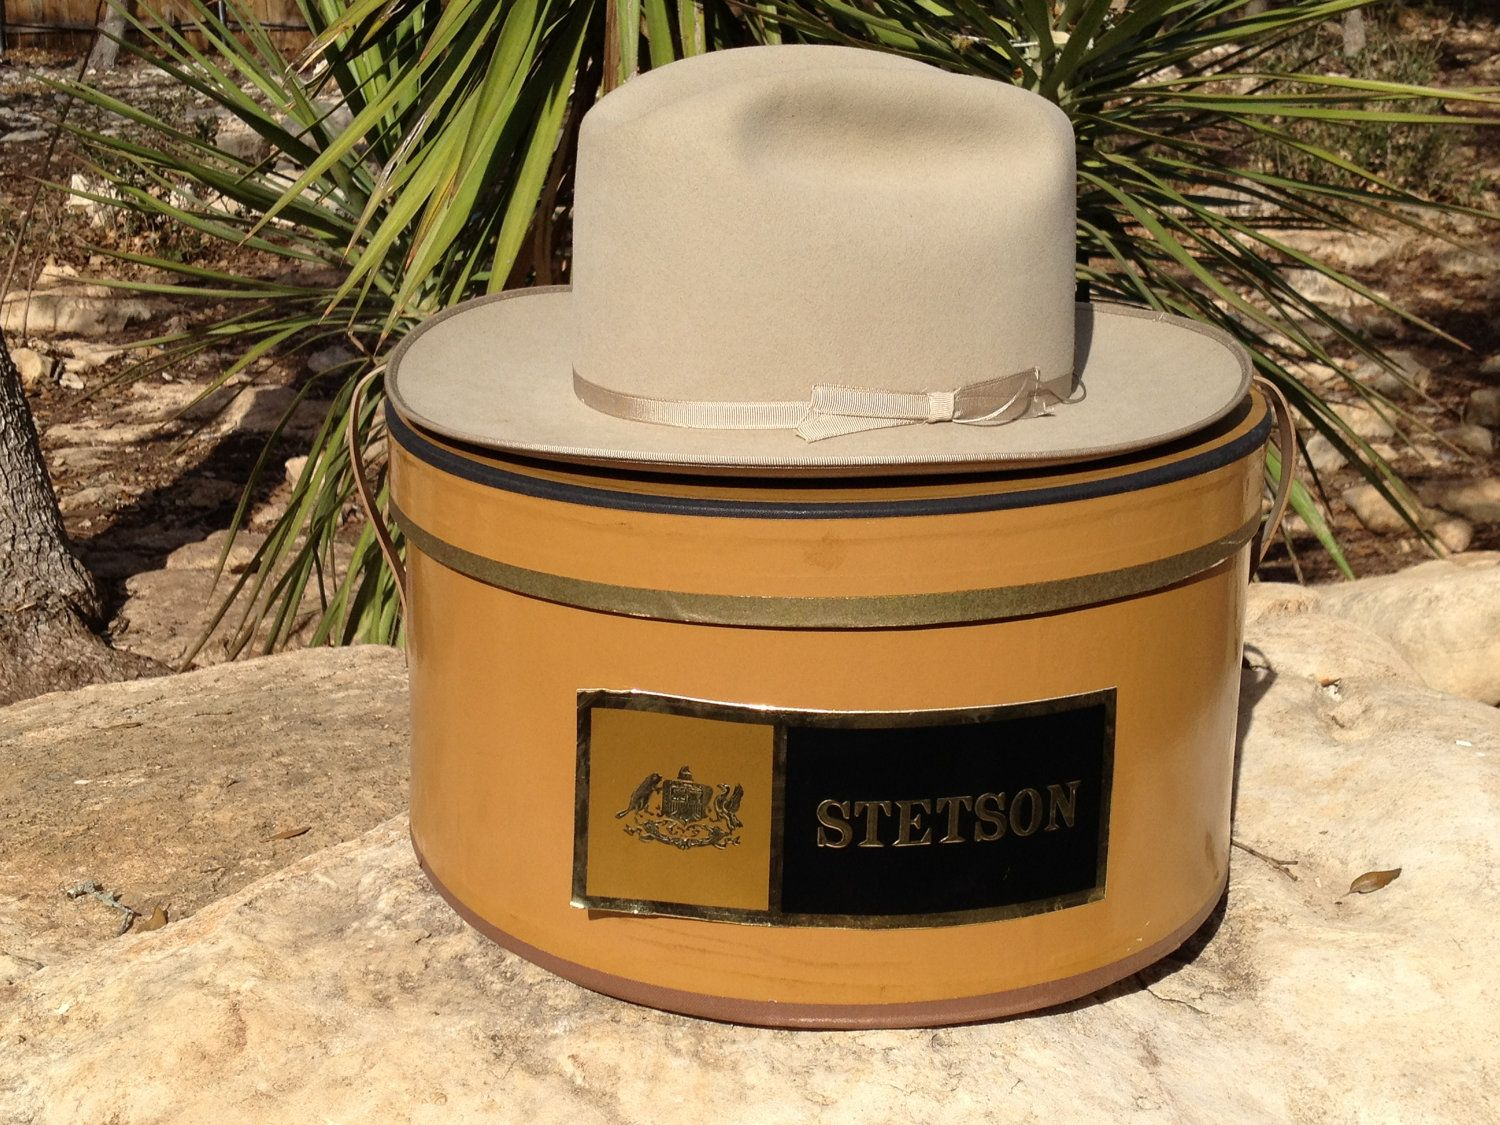 Vintage Stetson Cowboy Hat Open Road Size 6 3 4 With Hat Box Stetson Cowboy Hats Cowboy Hats Stetson